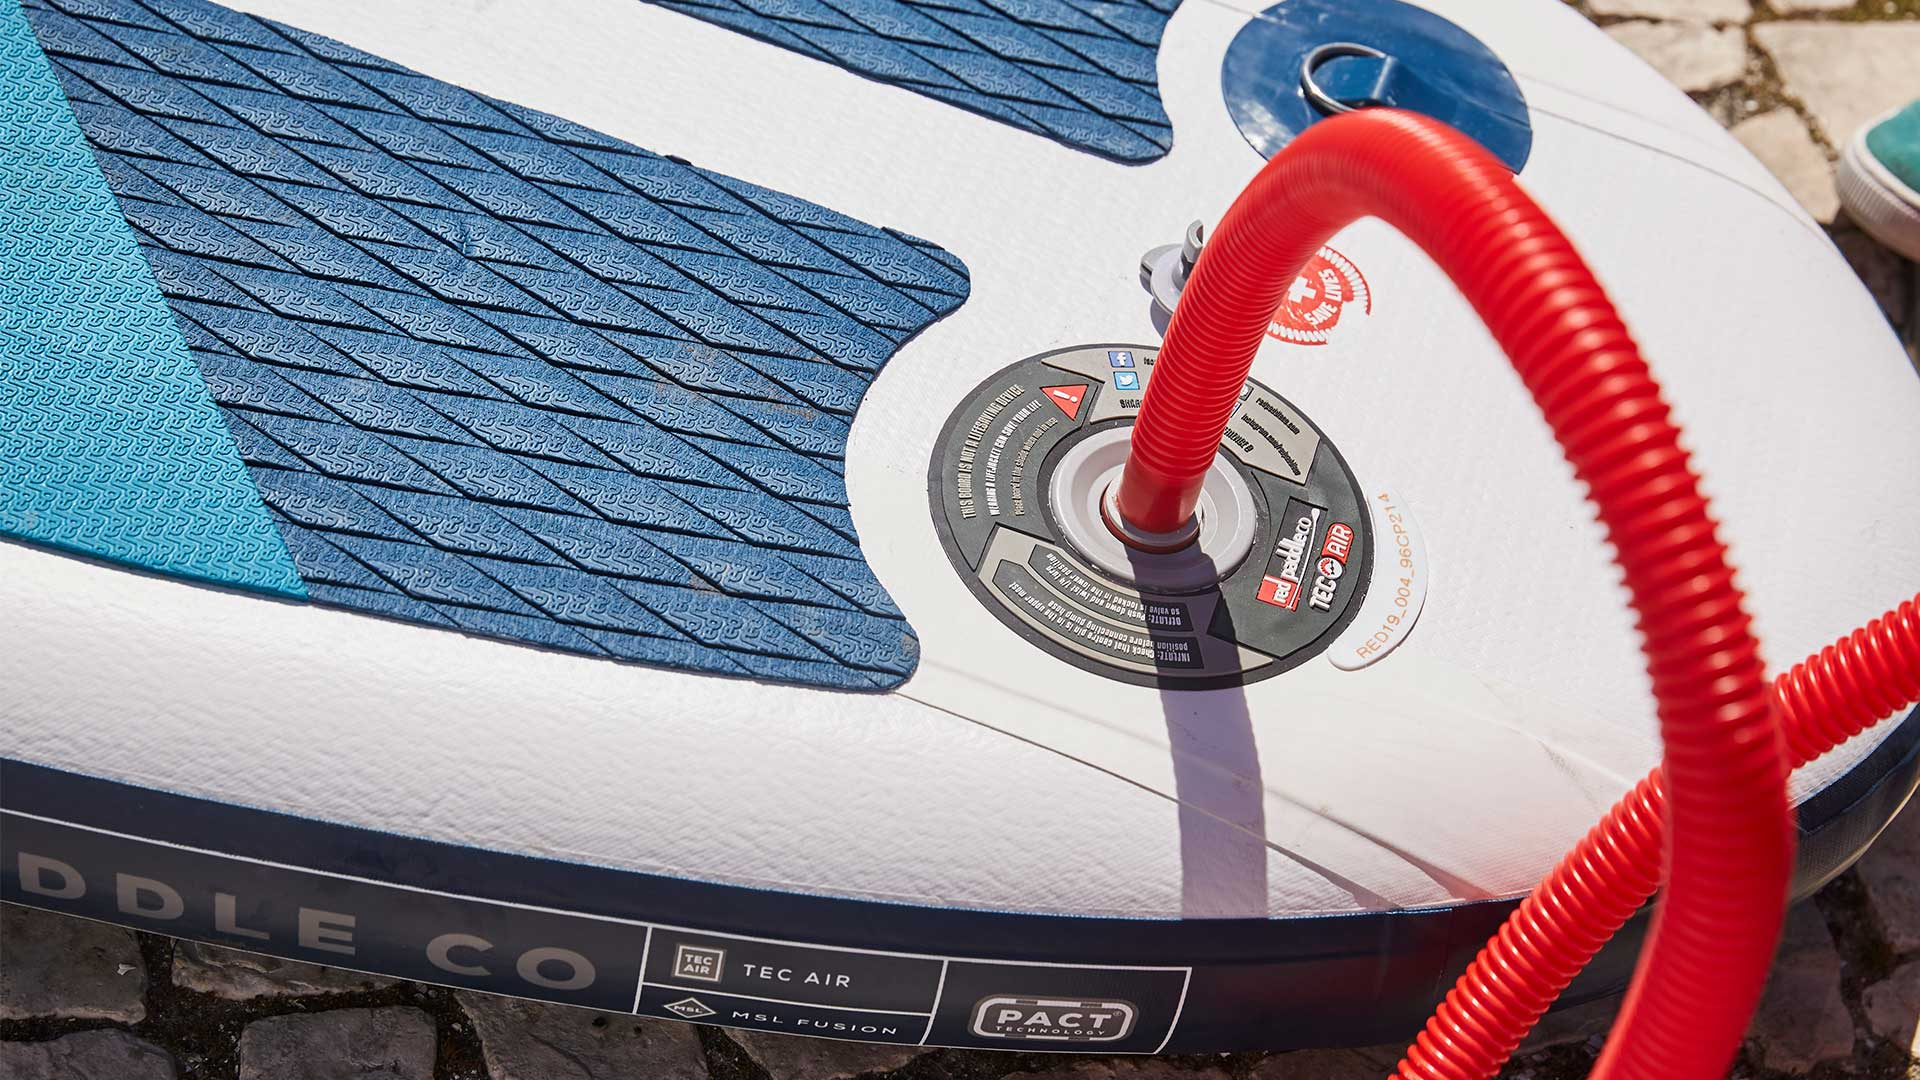 redpaddleco-96-compact-inflatable-paddle-board-inflatable-paddle-board-desktop-gallery-valve